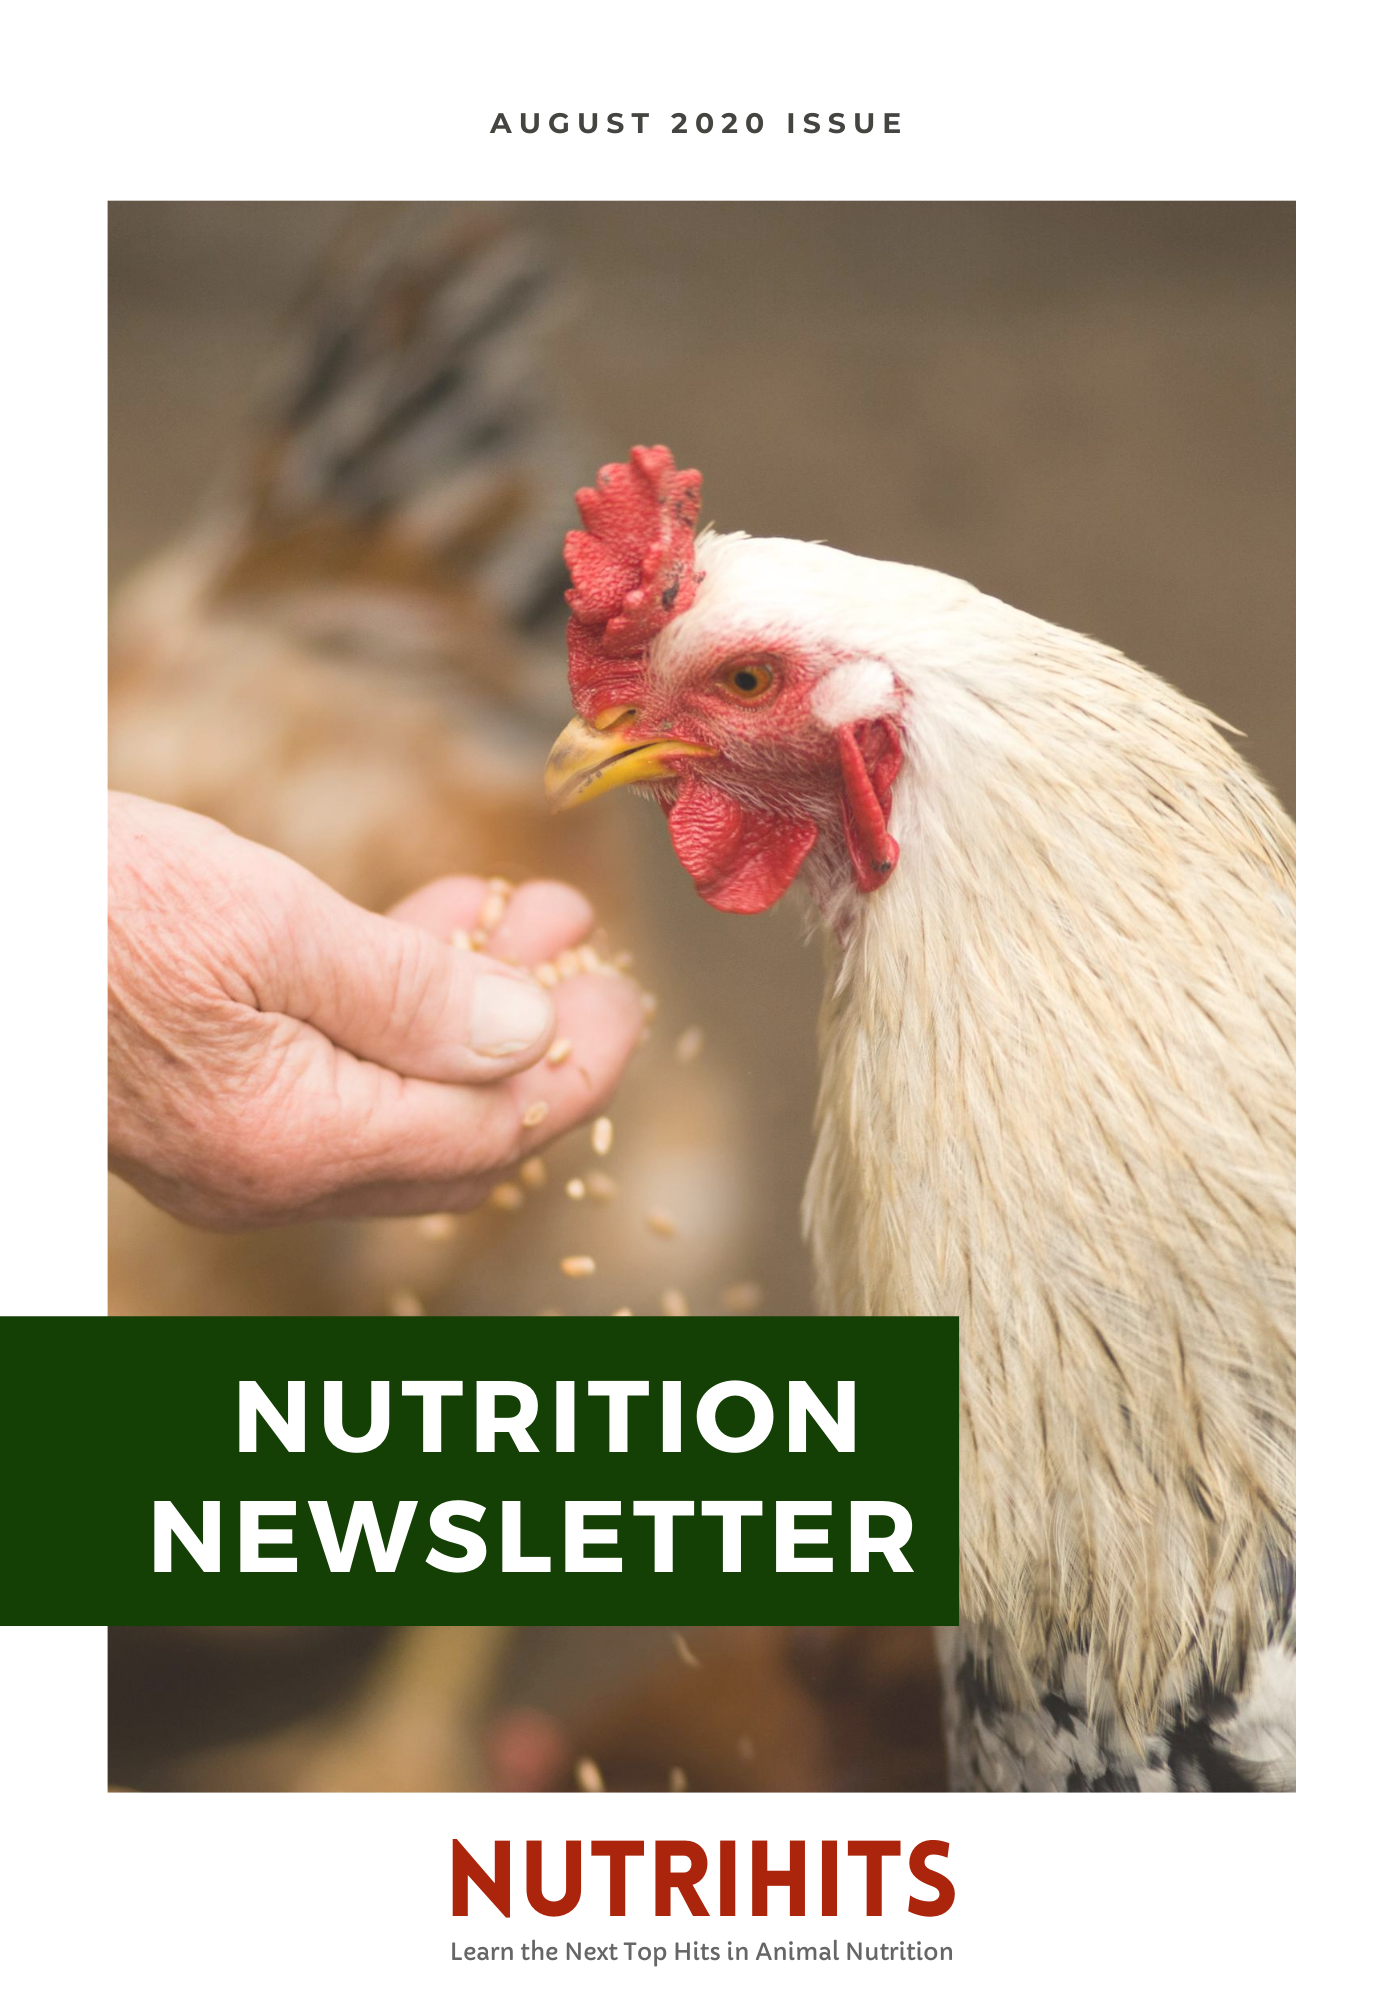 Nutrition Newsletter, August 2020